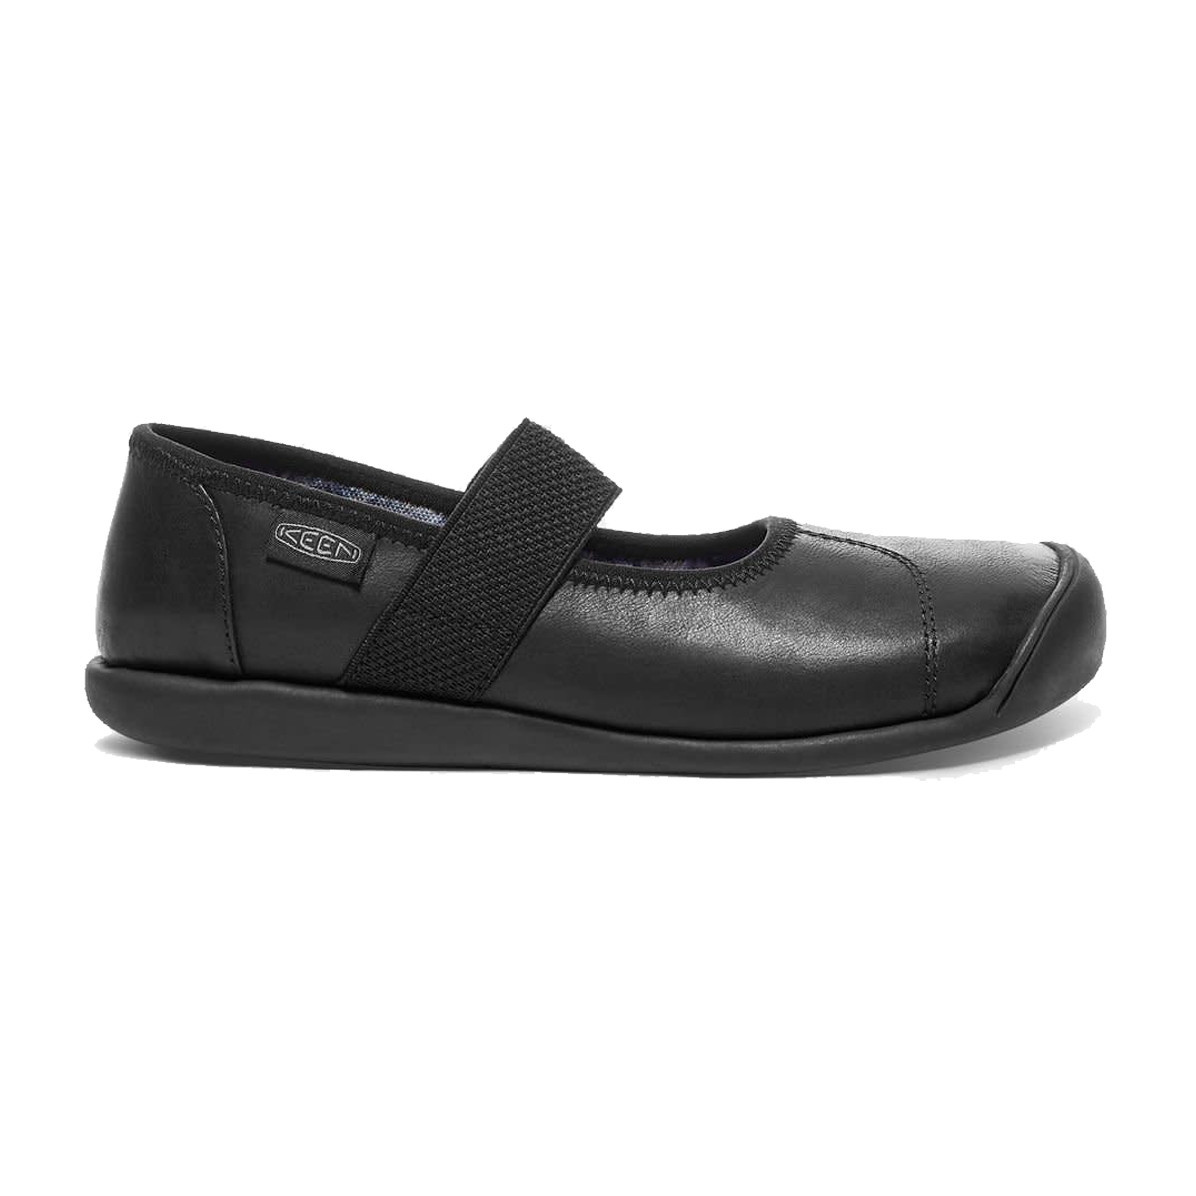 Keen Keen Women's Sienna MJ Leather Black